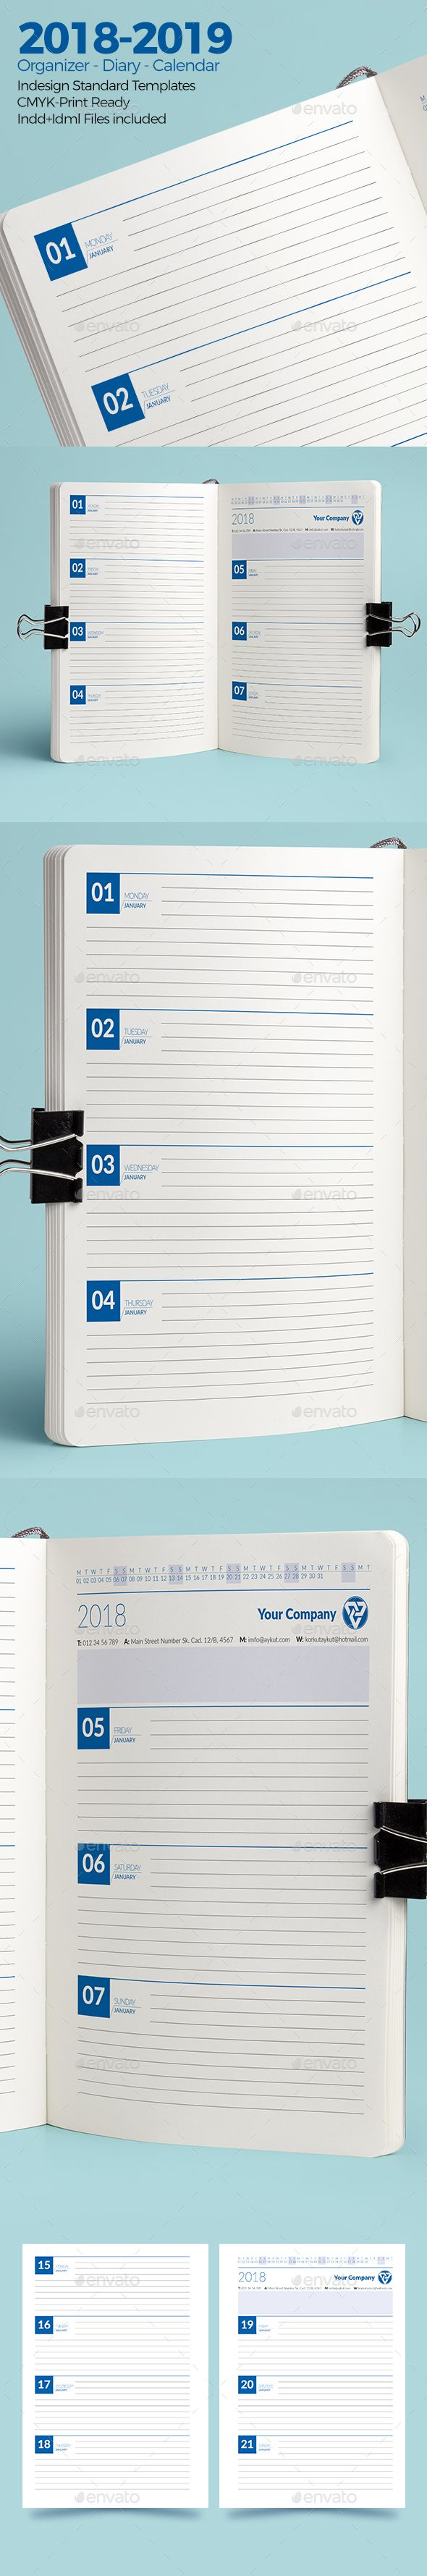 Weekly Diary Planner 2018 2019 Template Indesign Indd